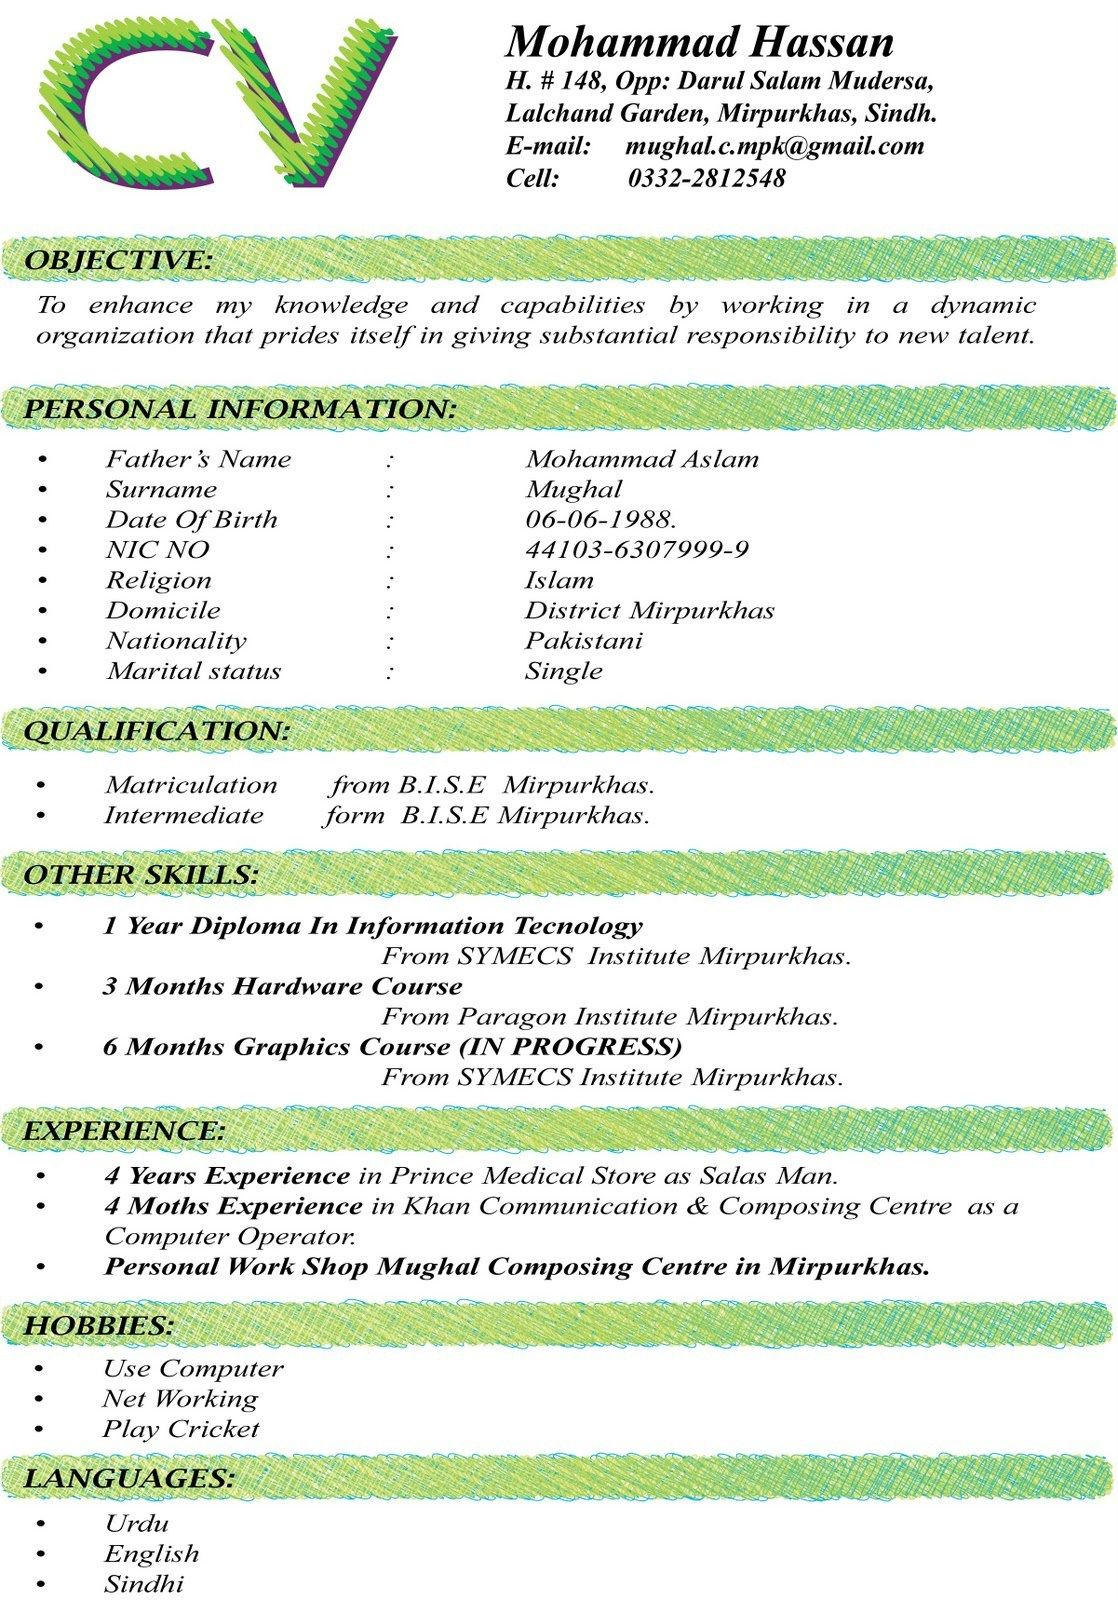 Cv Format To Download Free Cv Templates Download Cv Format Format Cv ...